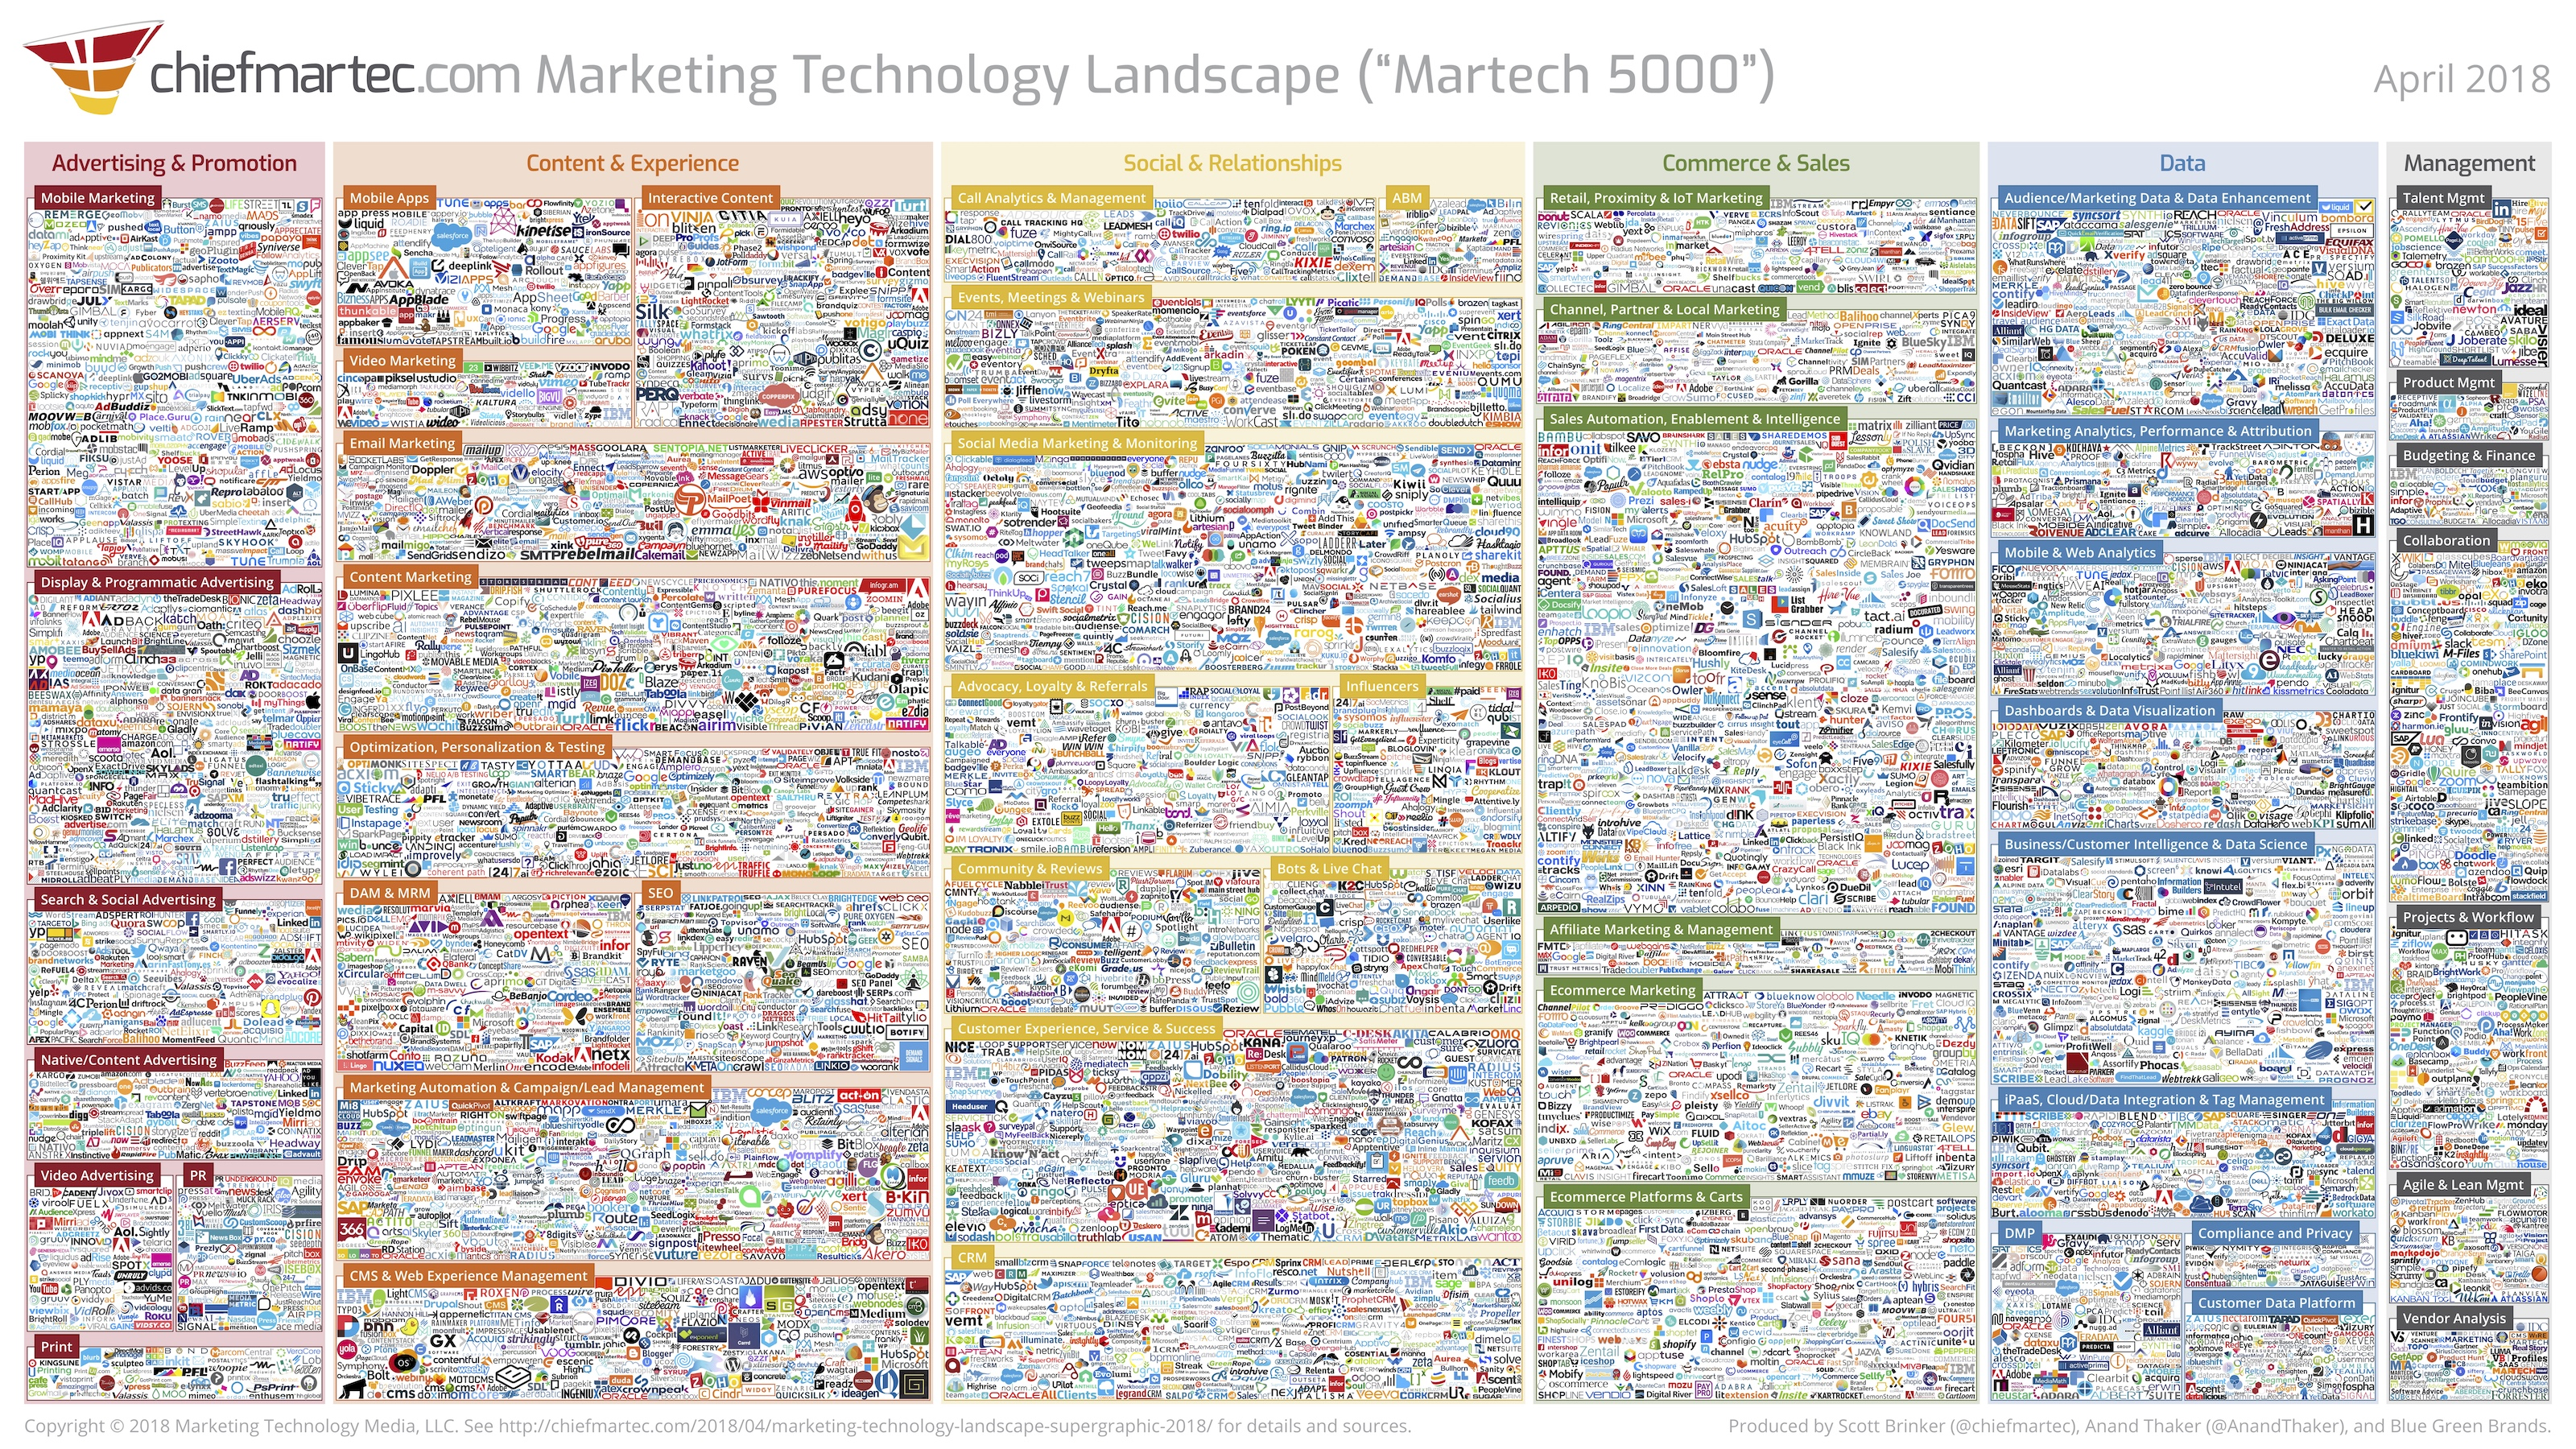 marketing-technology-5000-tools-cheifmartech